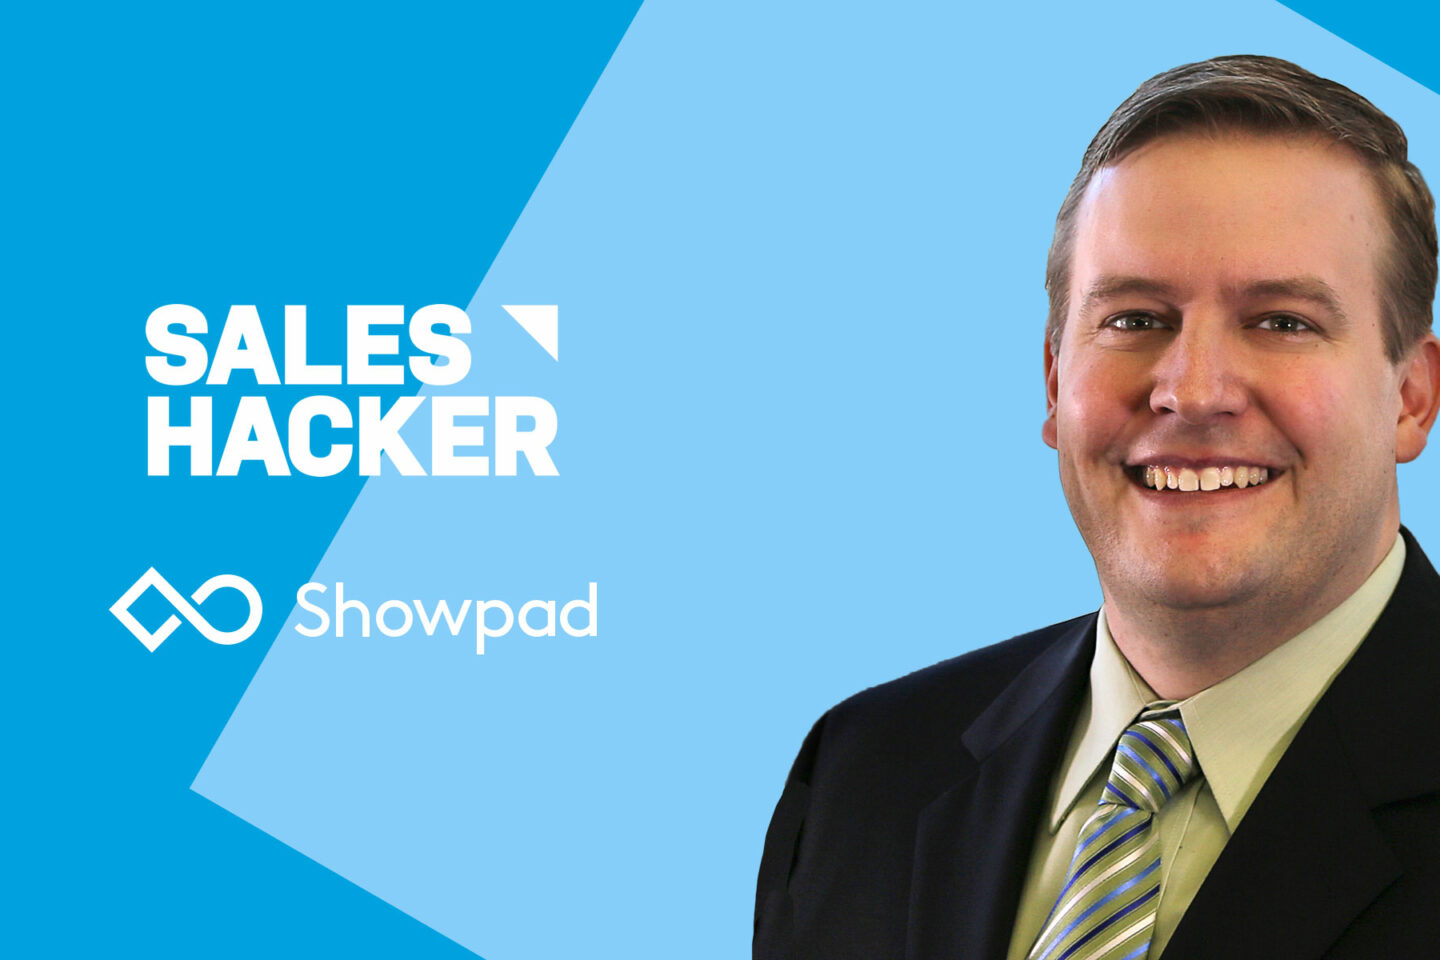 showpad sales hacker russell wurth